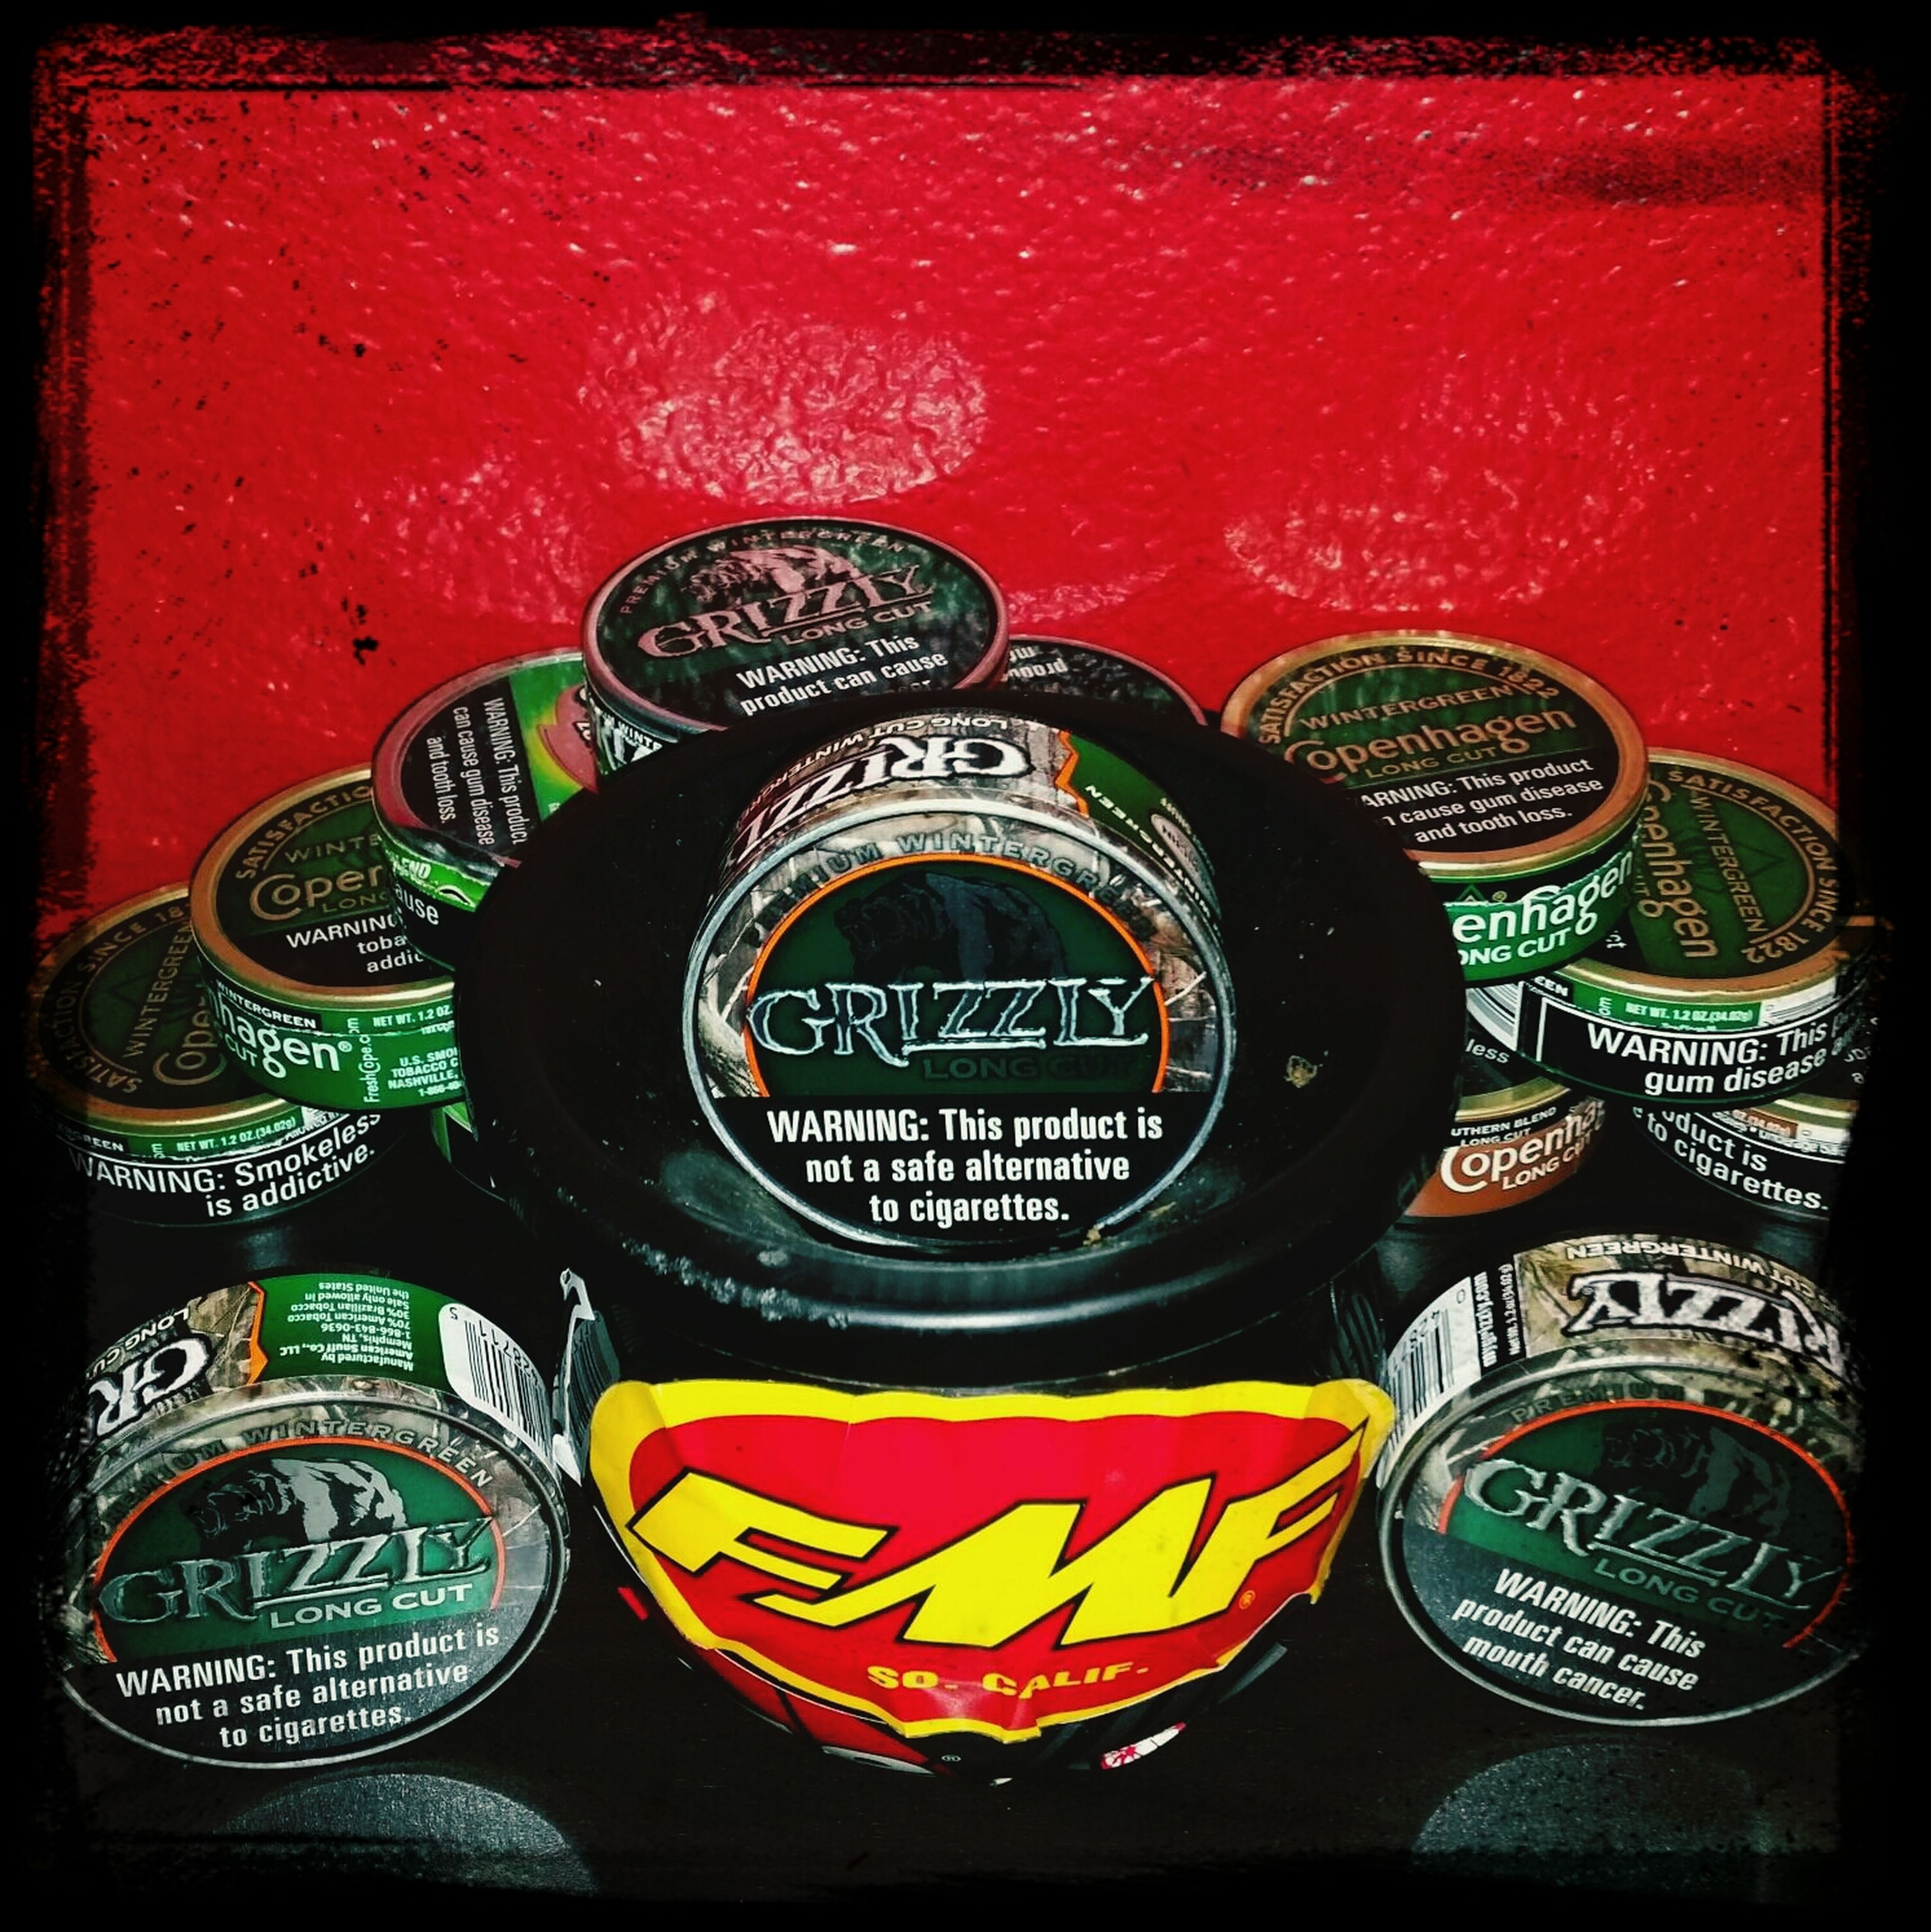 That new grizzly can tho Mudjug Grizzly